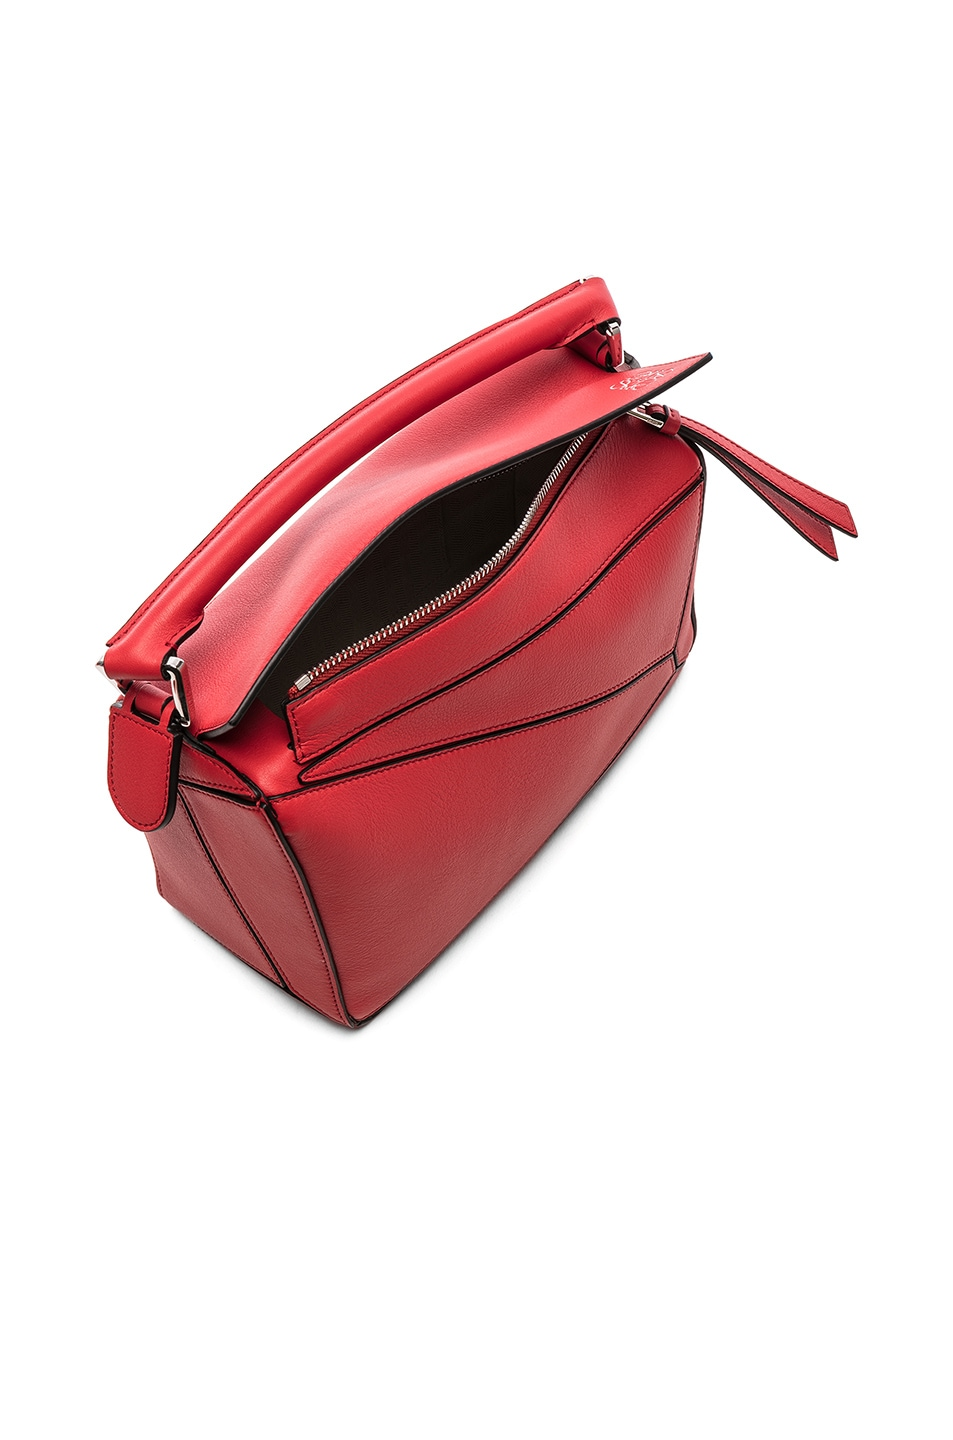 Image 5 of Loewe Puzzle Small Bag in Scarlet Red